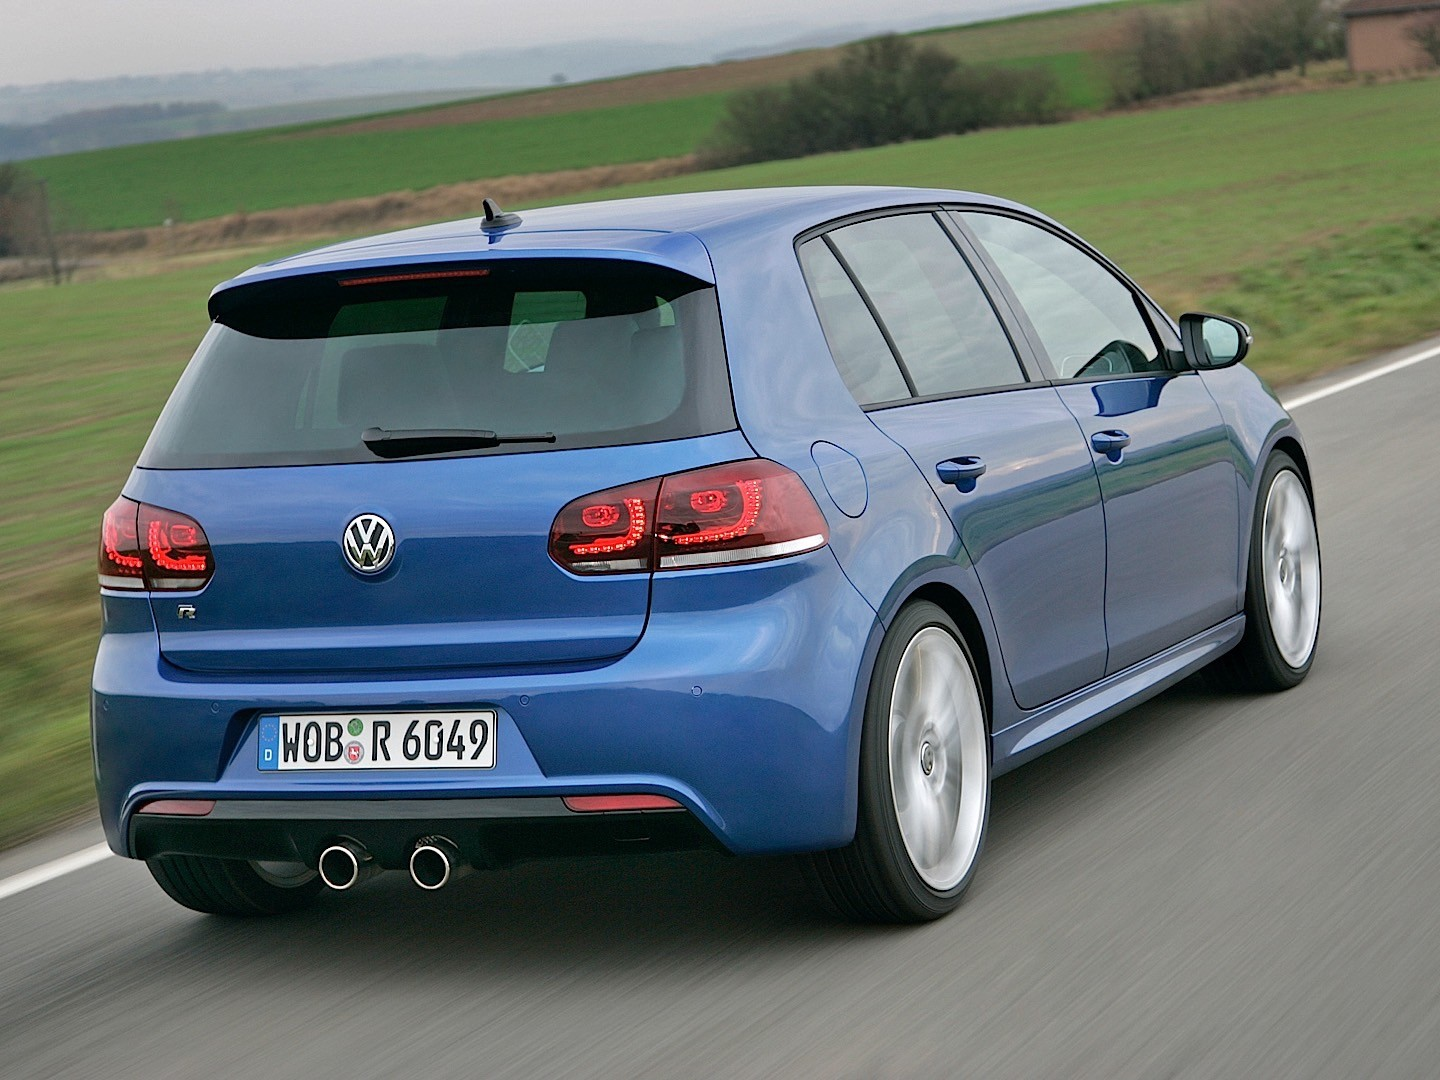 volkswagen golf vi r 5 doors specs photos 2009 2010 2011 2012 2013 autoevolution. Black Bedroom Furniture Sets. Home Design Ideas